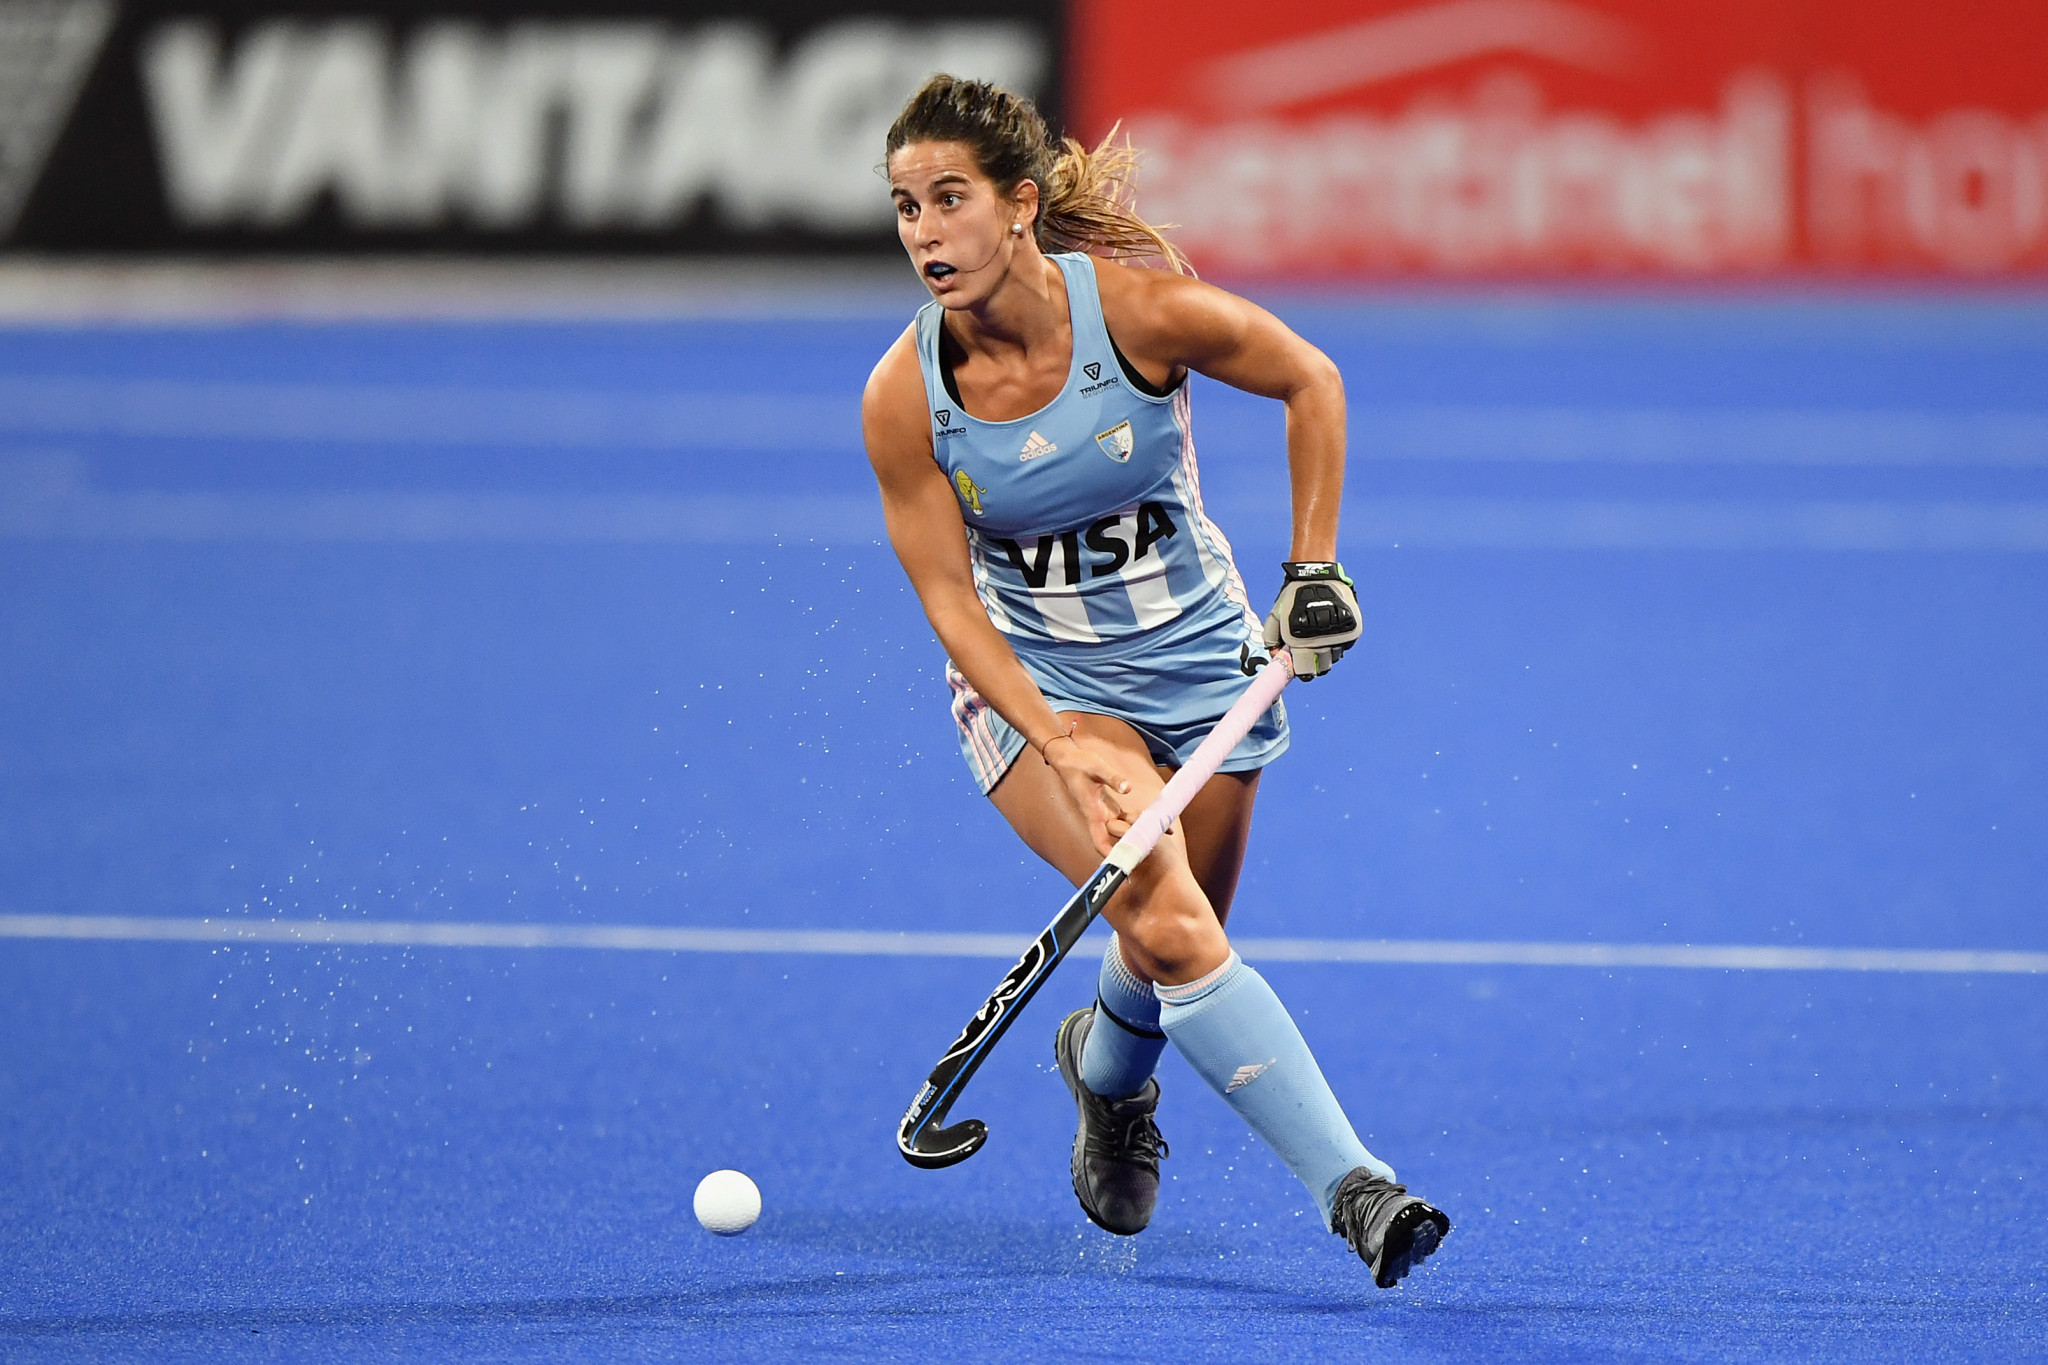 Argentina are currently second in the women's Hockey Pro League ©Getty Images